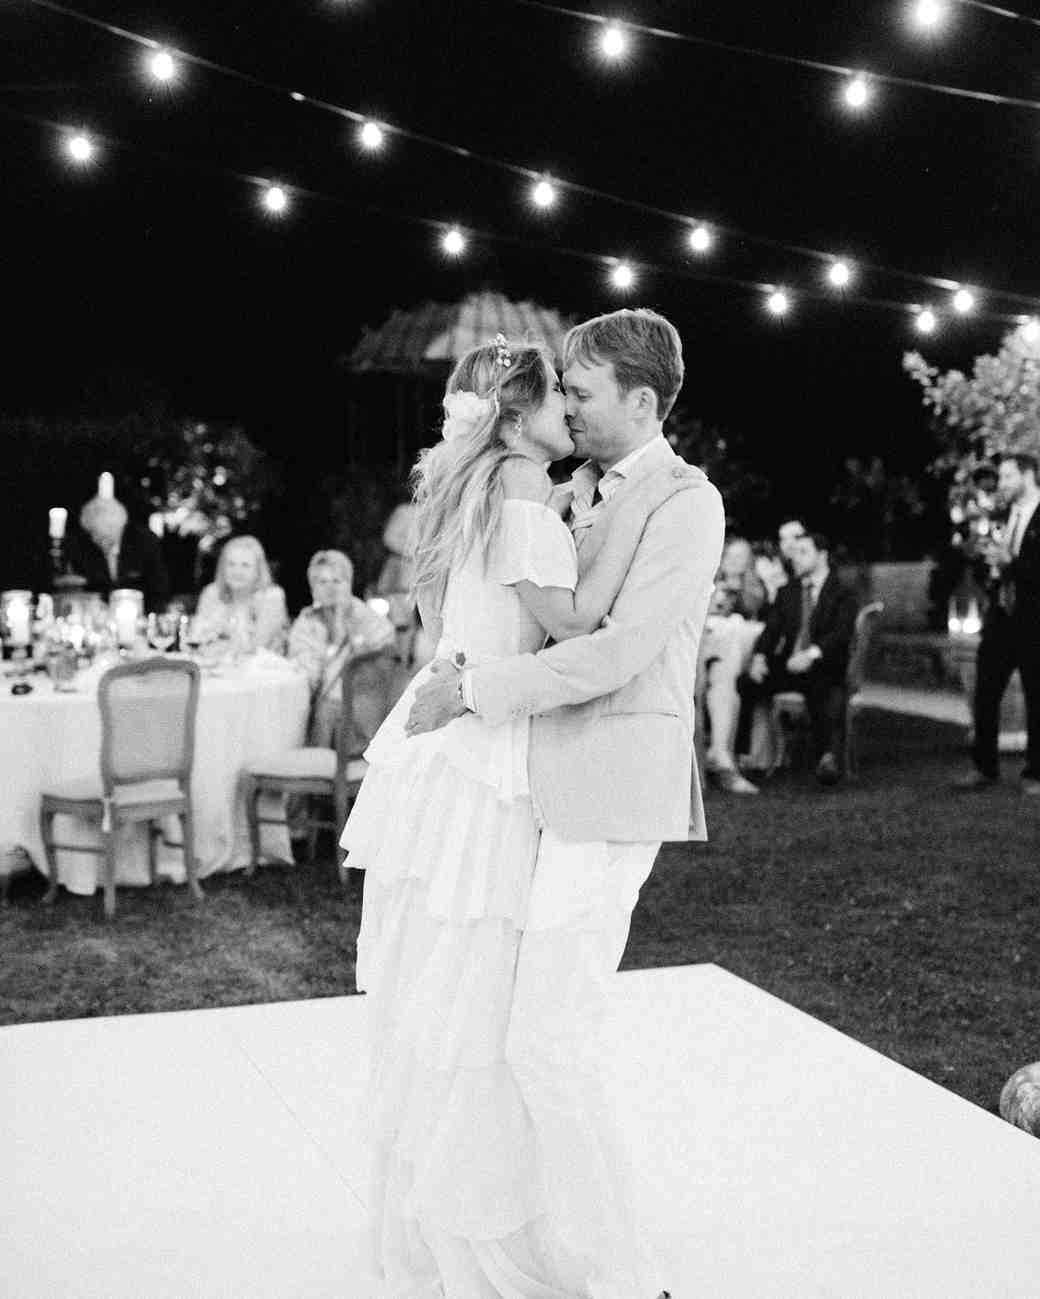 alexis zach wedding italy first dance black white